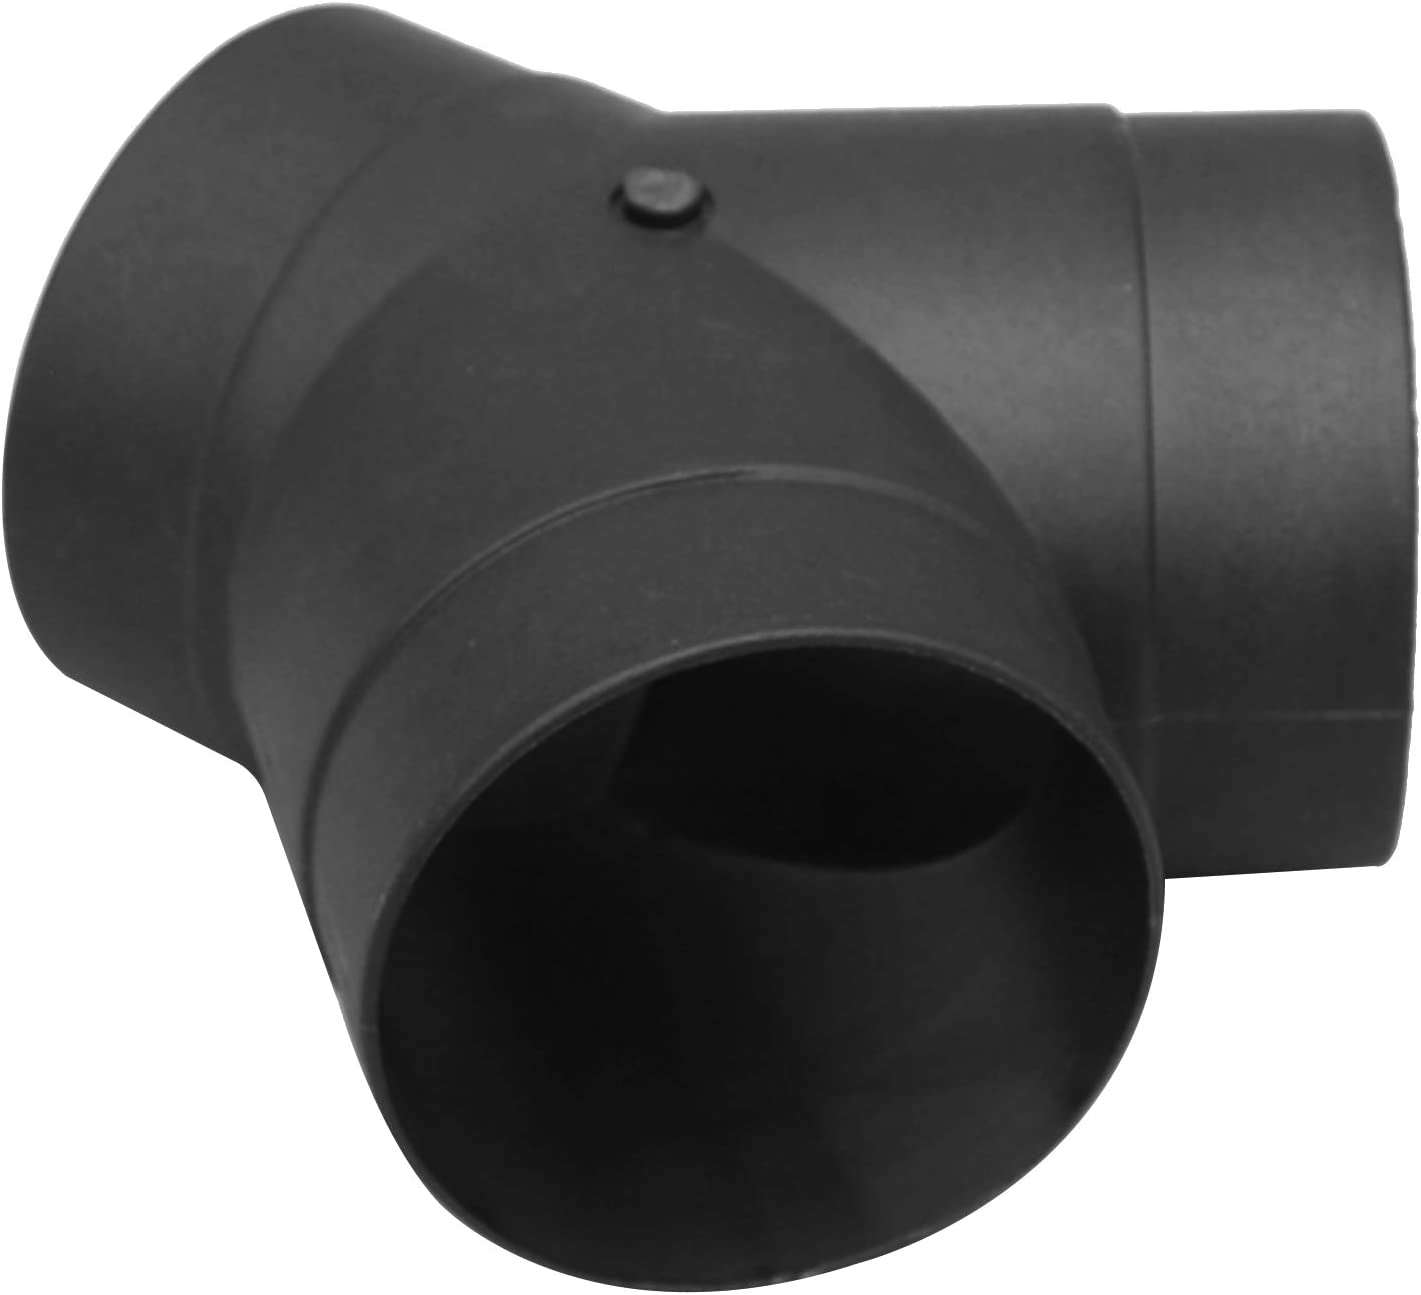 RuleaxAsi Air Vent Ducting T Y Tilted Bend Style Piece Elbow Pipe Outlet Exhaust Connector for Webasto Eberspaecher Diesel Parking Heater Truck Boat Car Air Diesel Heater Accessory